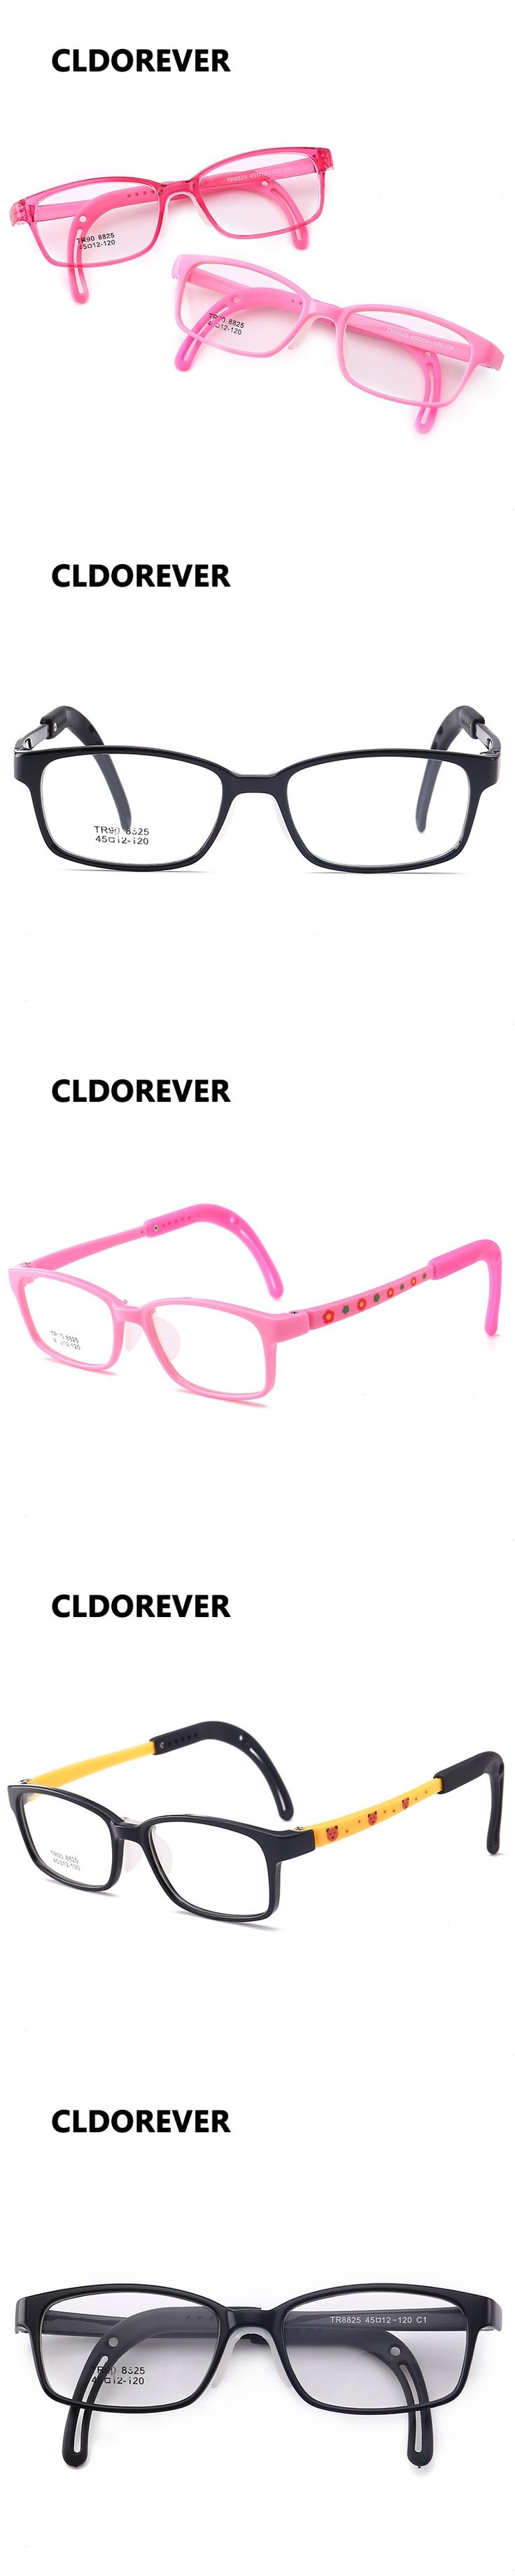 Cute TR90 Flexible Kids Glasses Frames Boy Girl Square Eyeglasses Children Urltra-Light Eyewear Optical Spectacle Eye Glasses